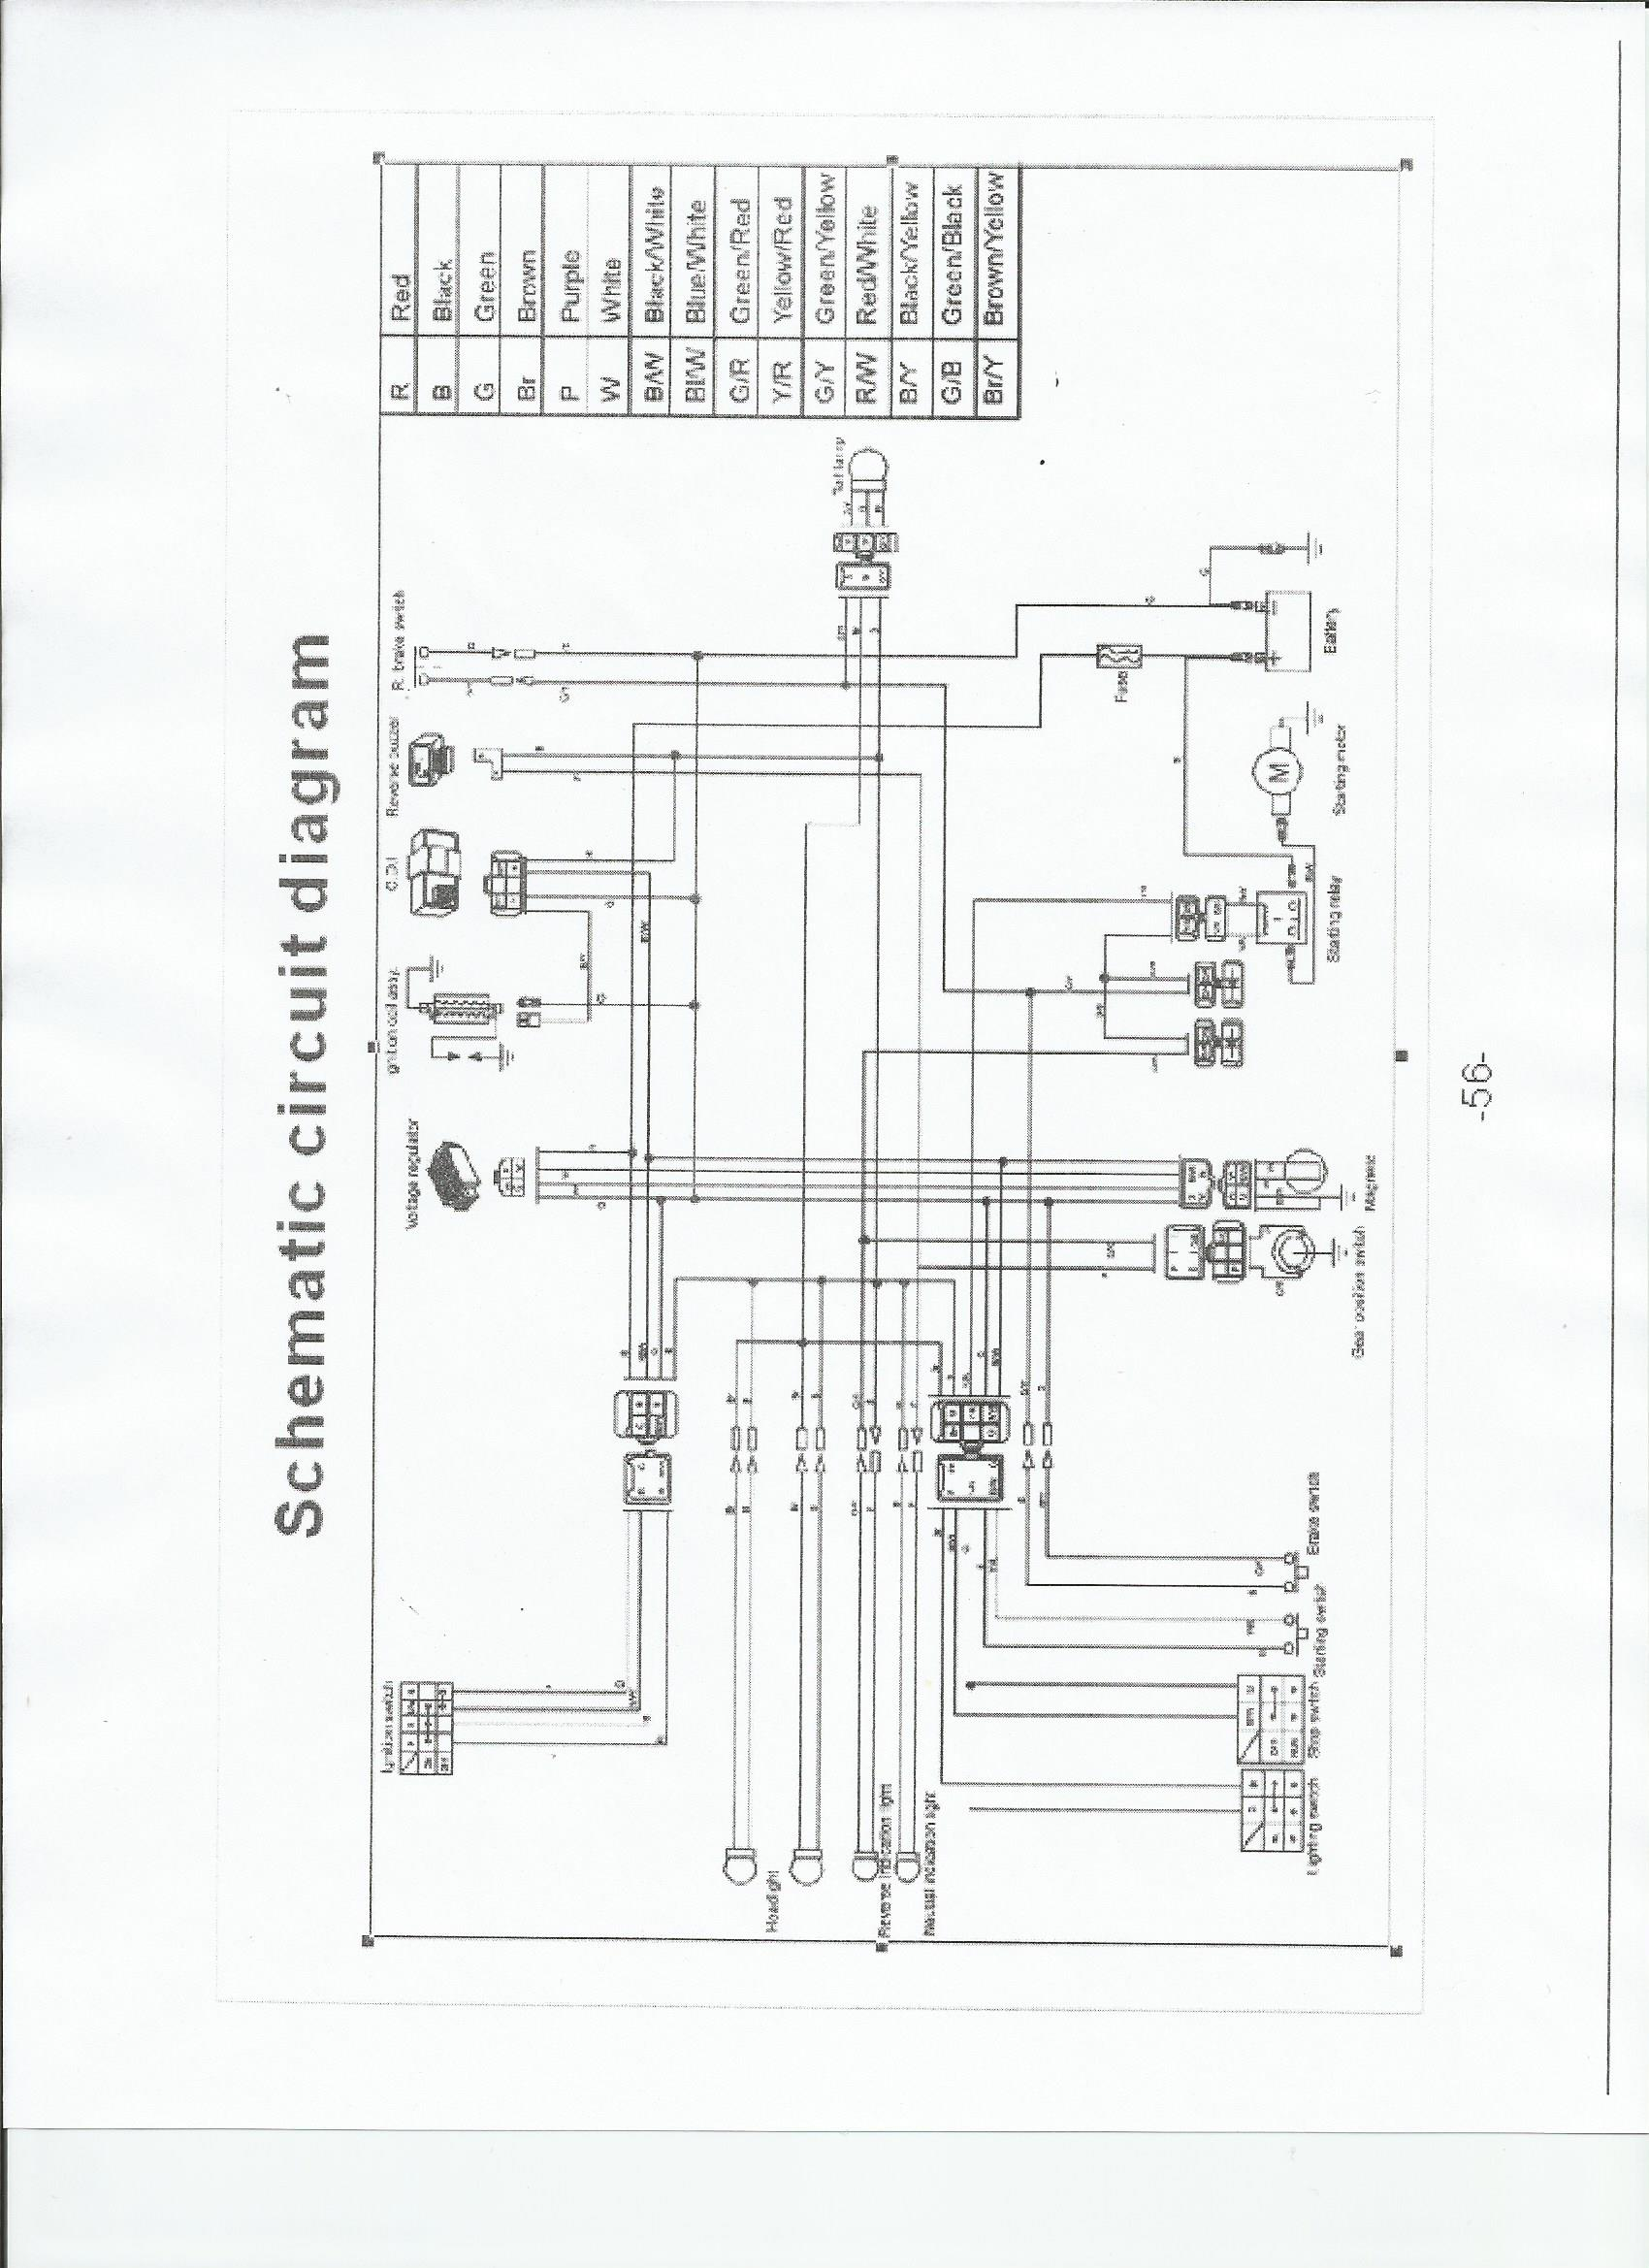 711e6d0 tao 110cc atv wiring diagram ata 110 b | wiring resources  wiring resources